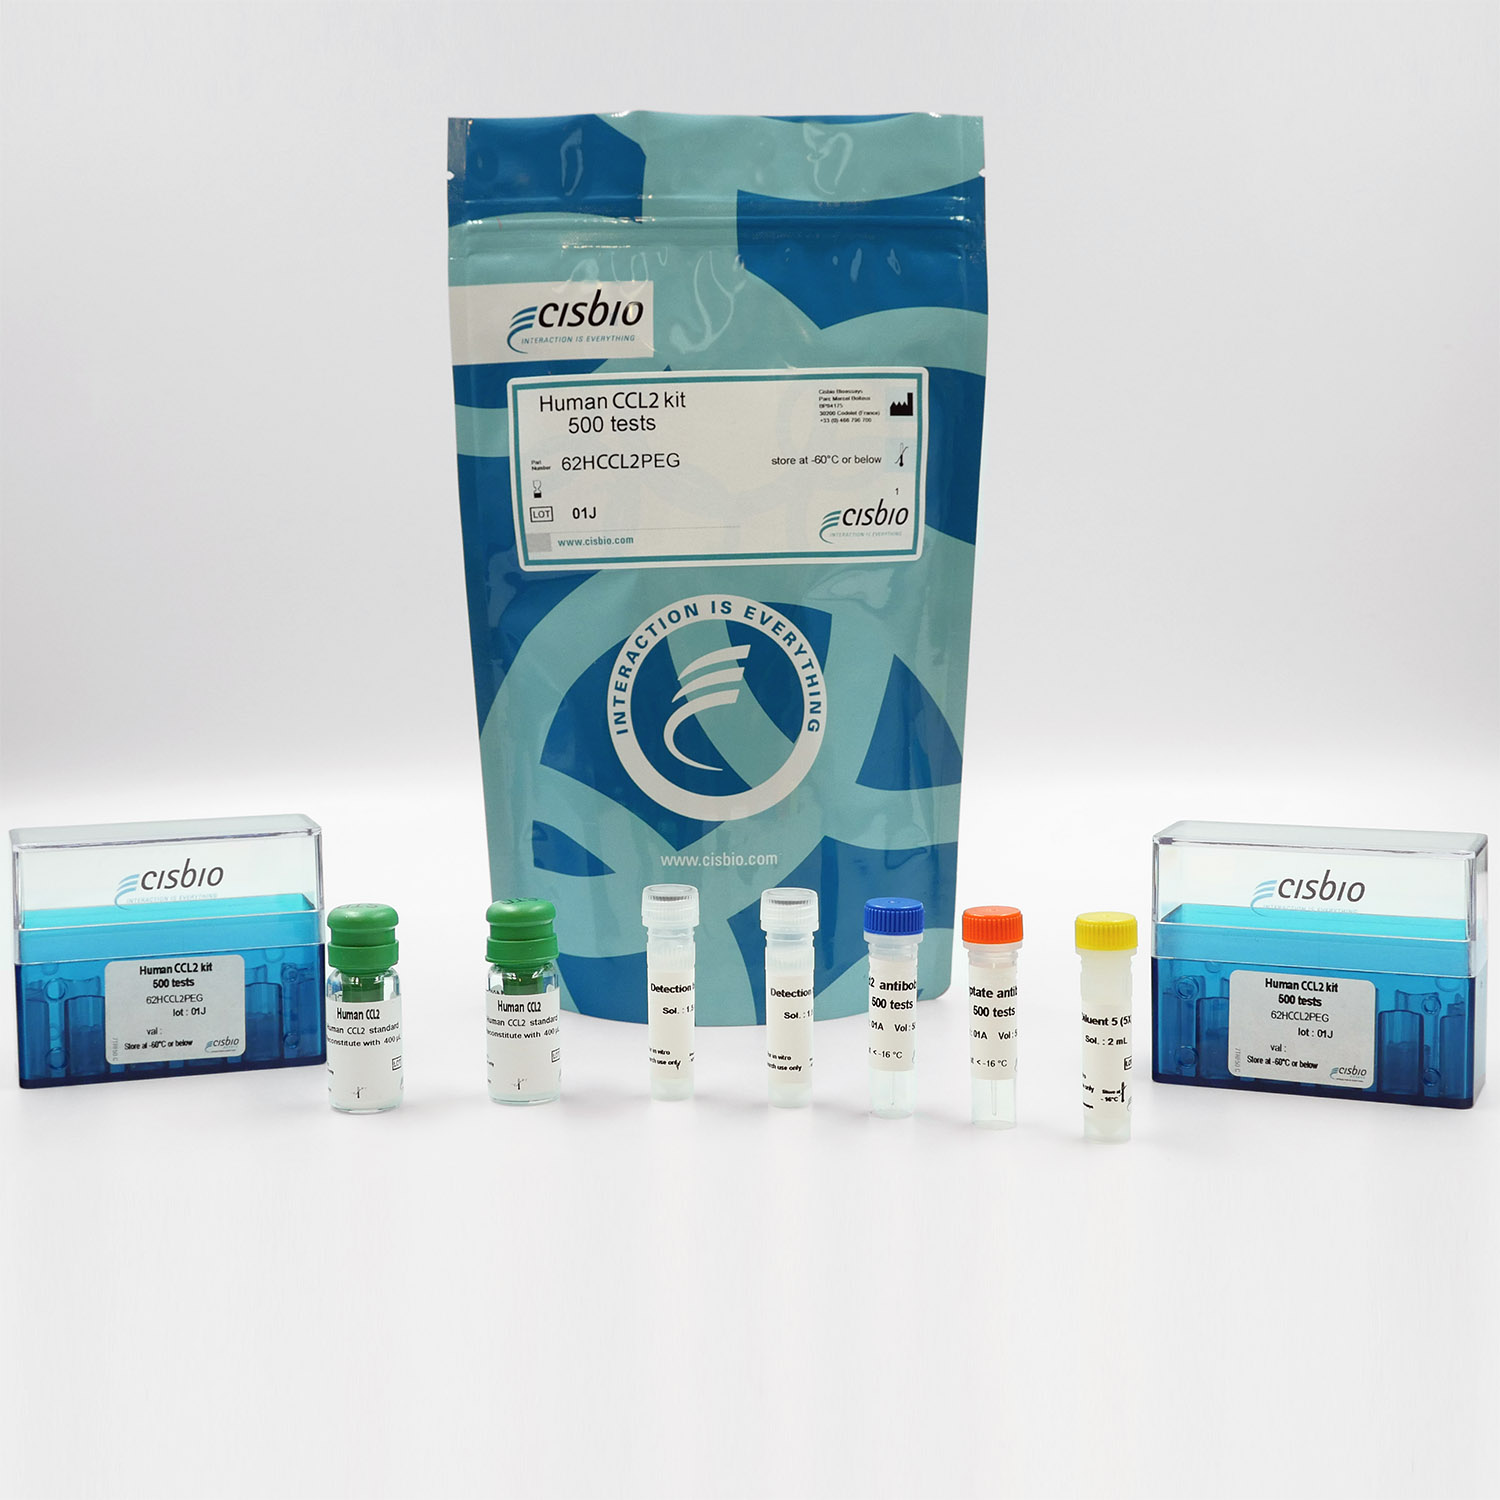 Photography of the Human CCL2 kit and components